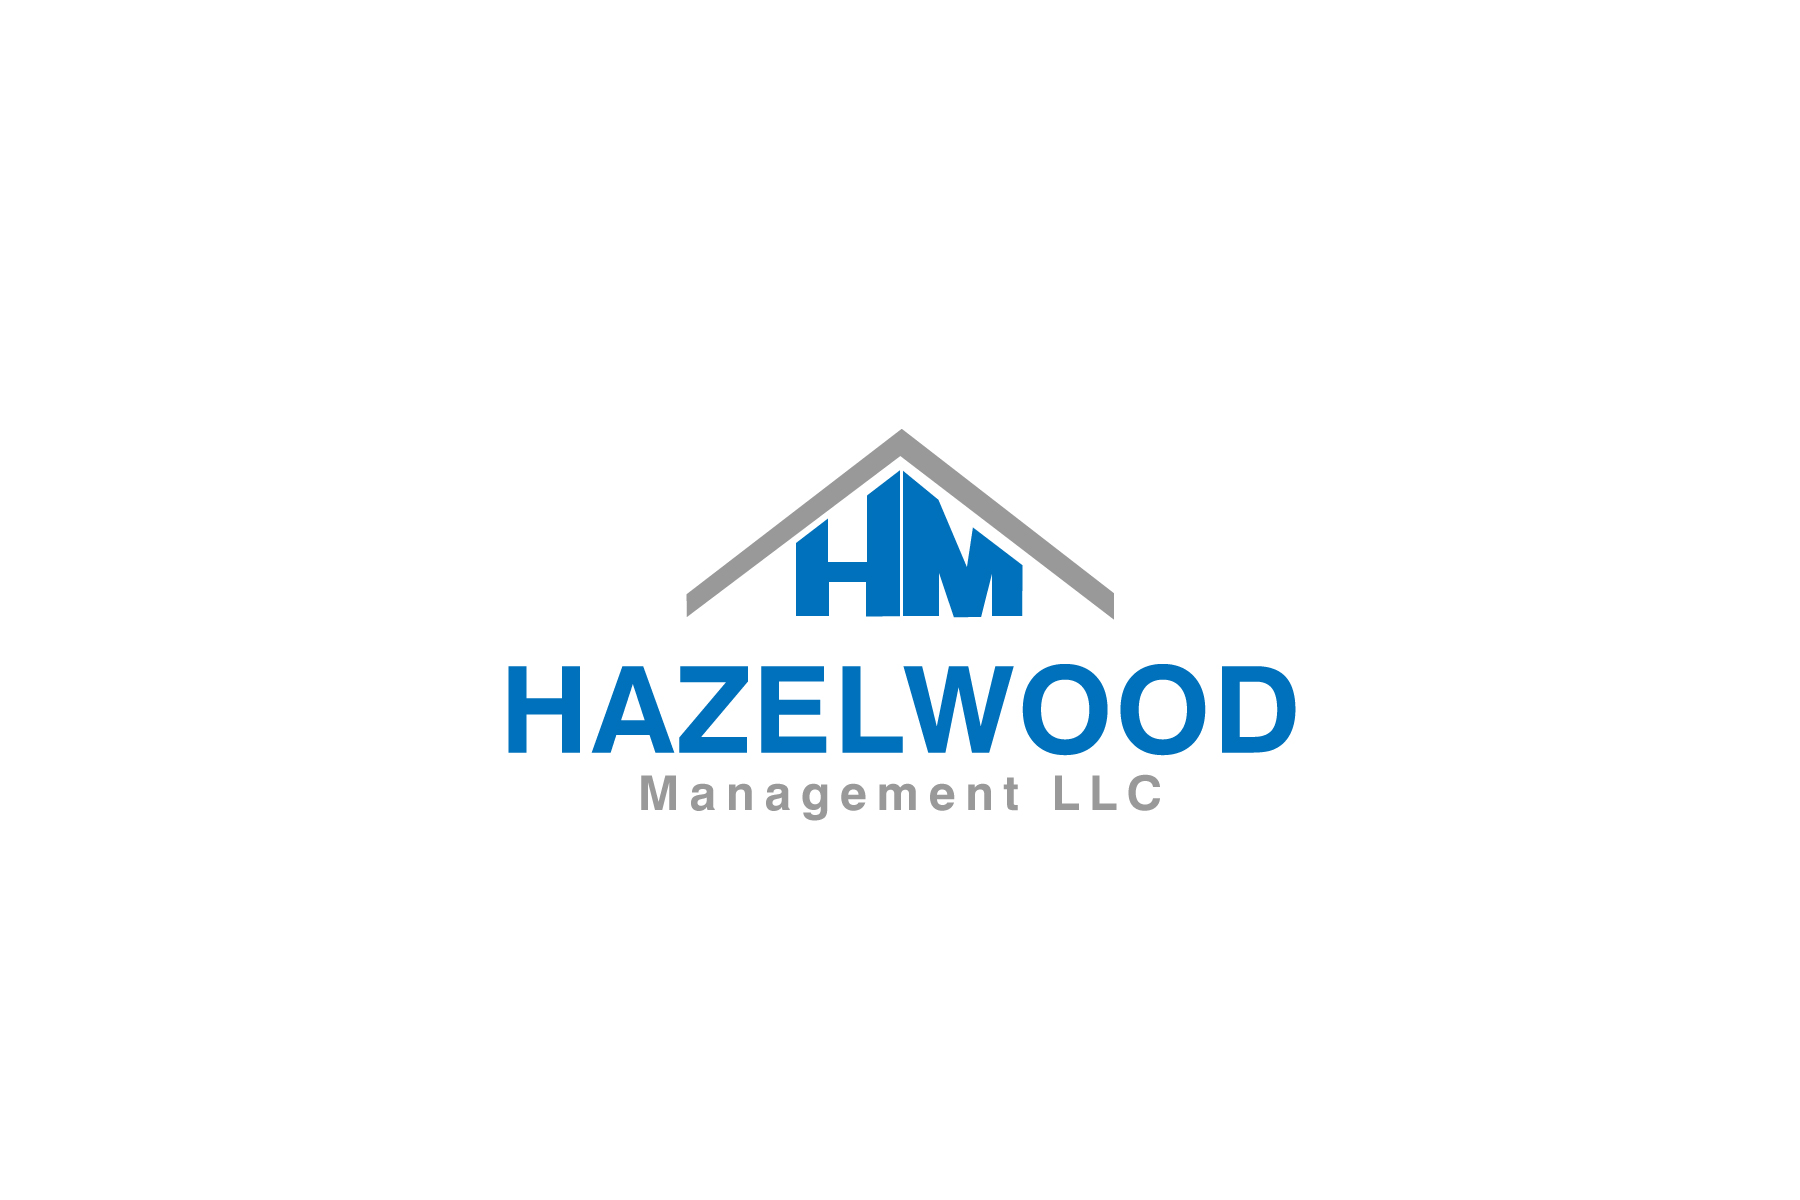 Logo Design by Jagdeep Singh - Entry No. 19 in the Logo Design Contest Hazelwood Management LLC Logo Design.